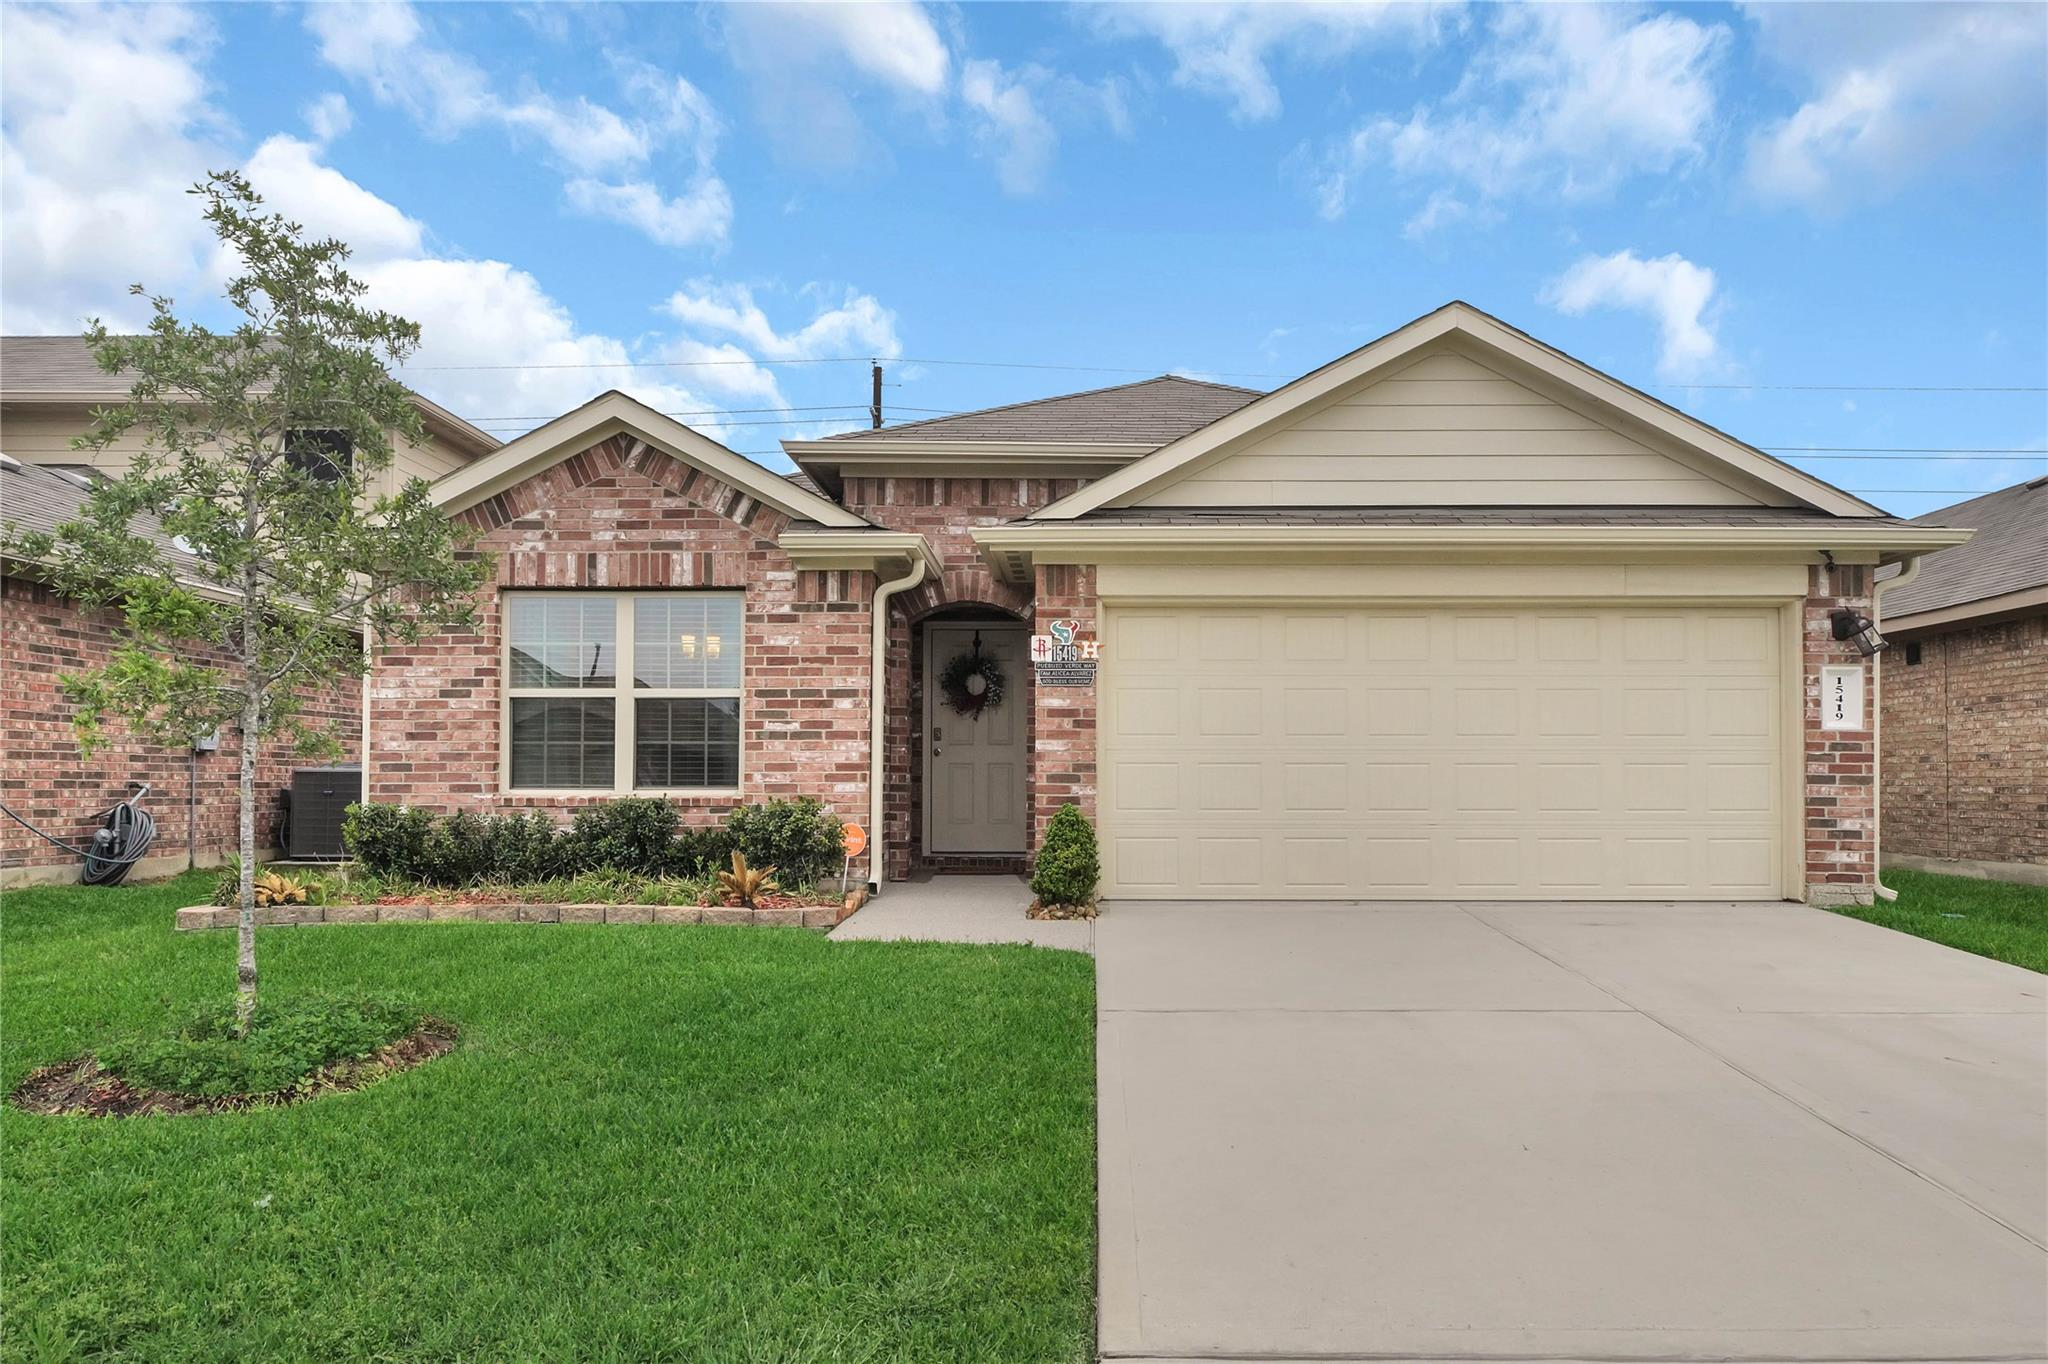 15419 Pueblito Verde Way Property Photo - Channelview, TX real estate listing